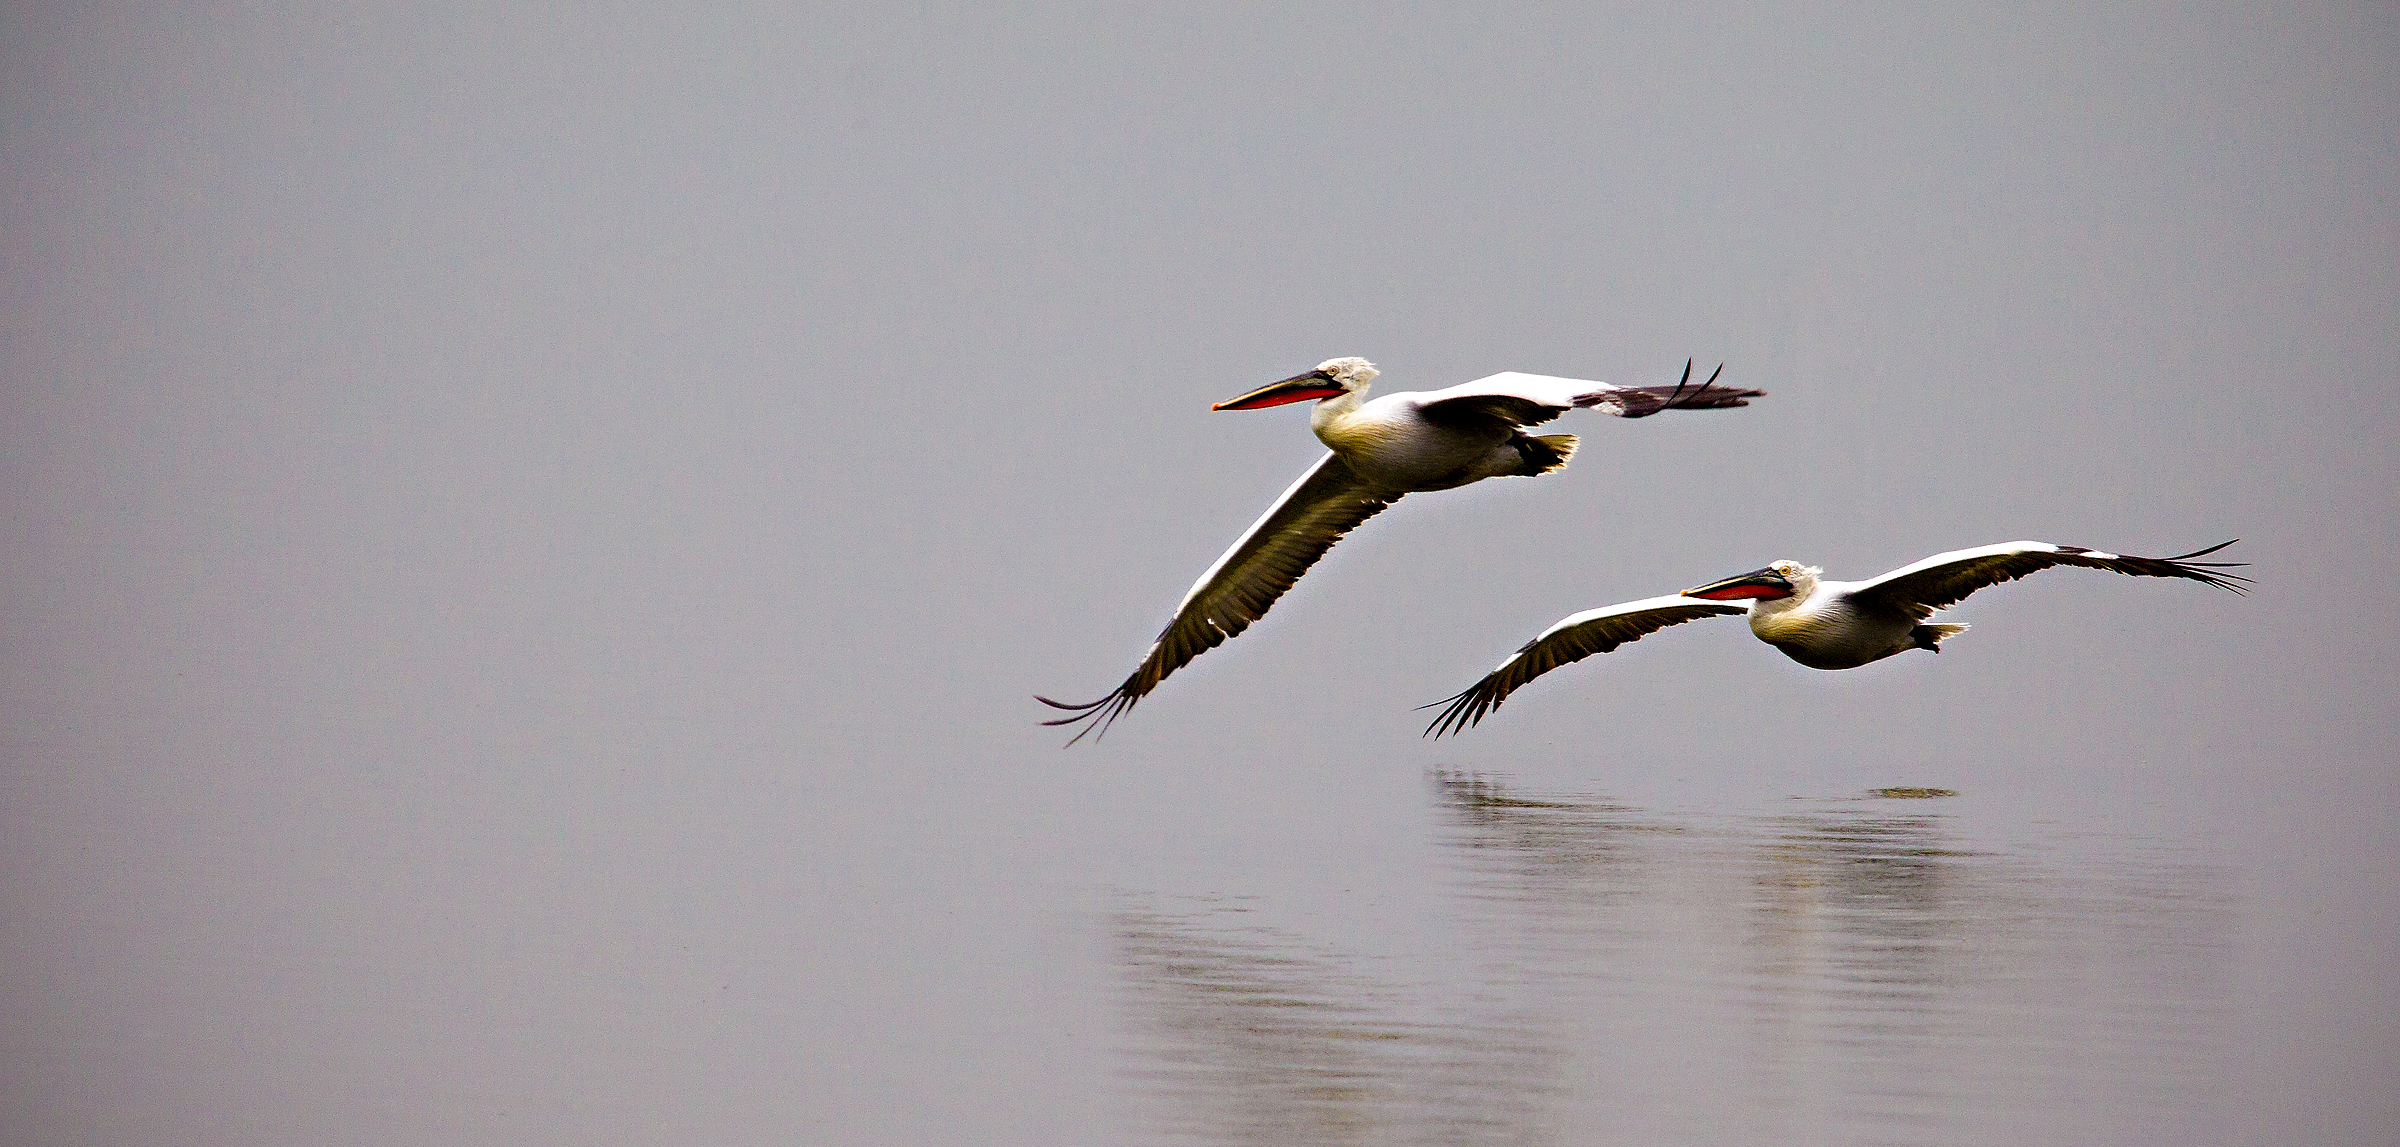 Dalmatian Pelicans in flight over lake Kerkini photographed during one of our landscape, wildlife and bird photography workshops in Greece.